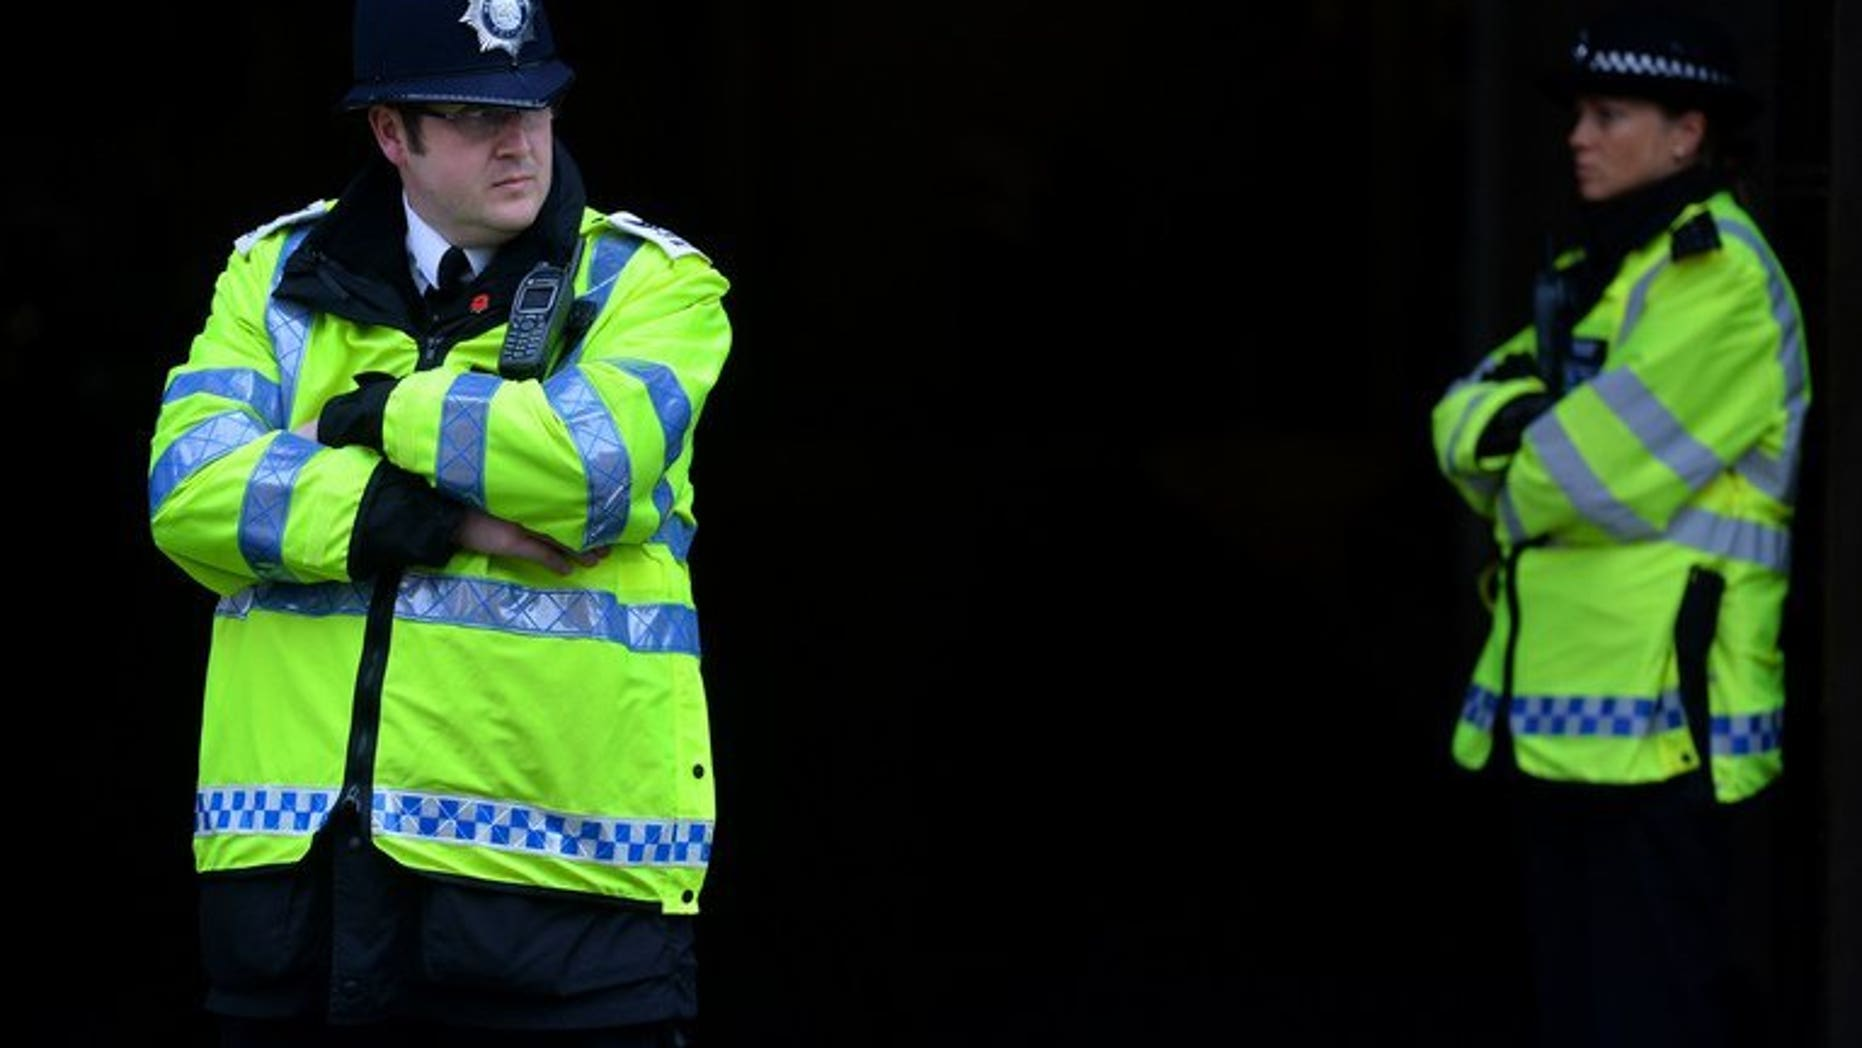 British police officers at Westminster Magistrates court in central London on May 30, 2013. A 24-year-old woman has died in hospital on Saturday after a double shooting while out celebrating her birthday in North London, police said.